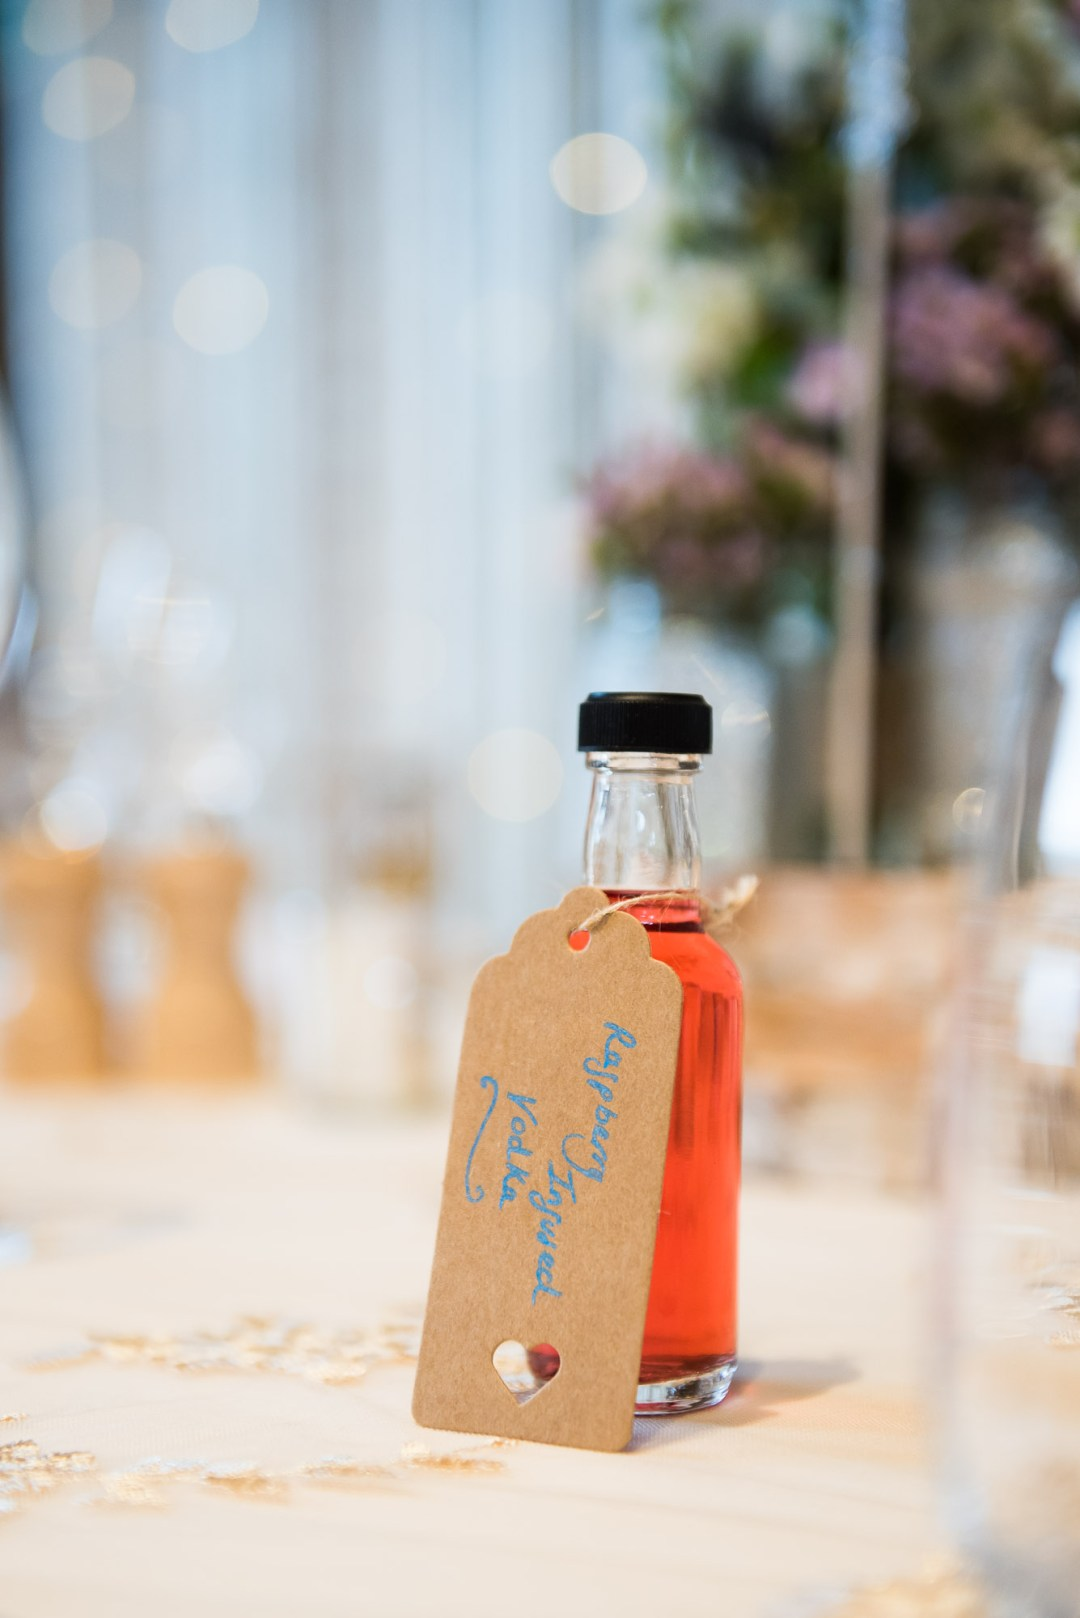 DIY wedding favour of infused vodka bottles